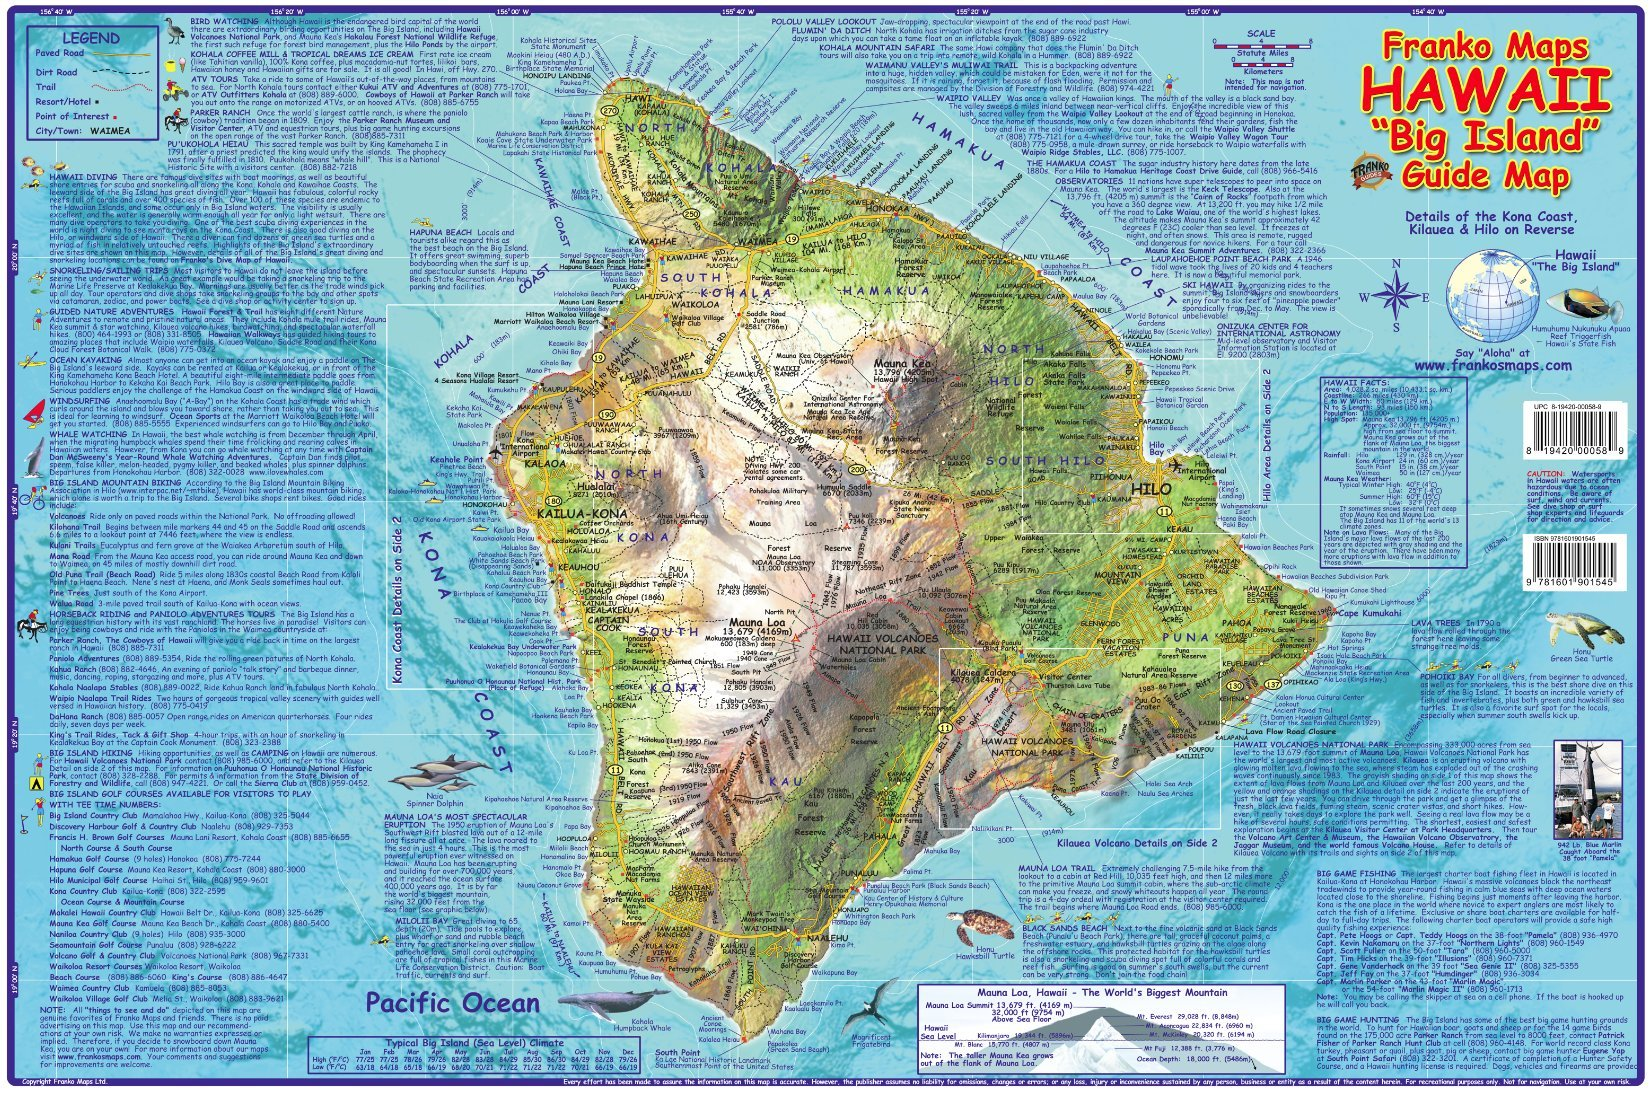 Hawaii The Big Island Adventure Map Franko Maps Laminated Poster